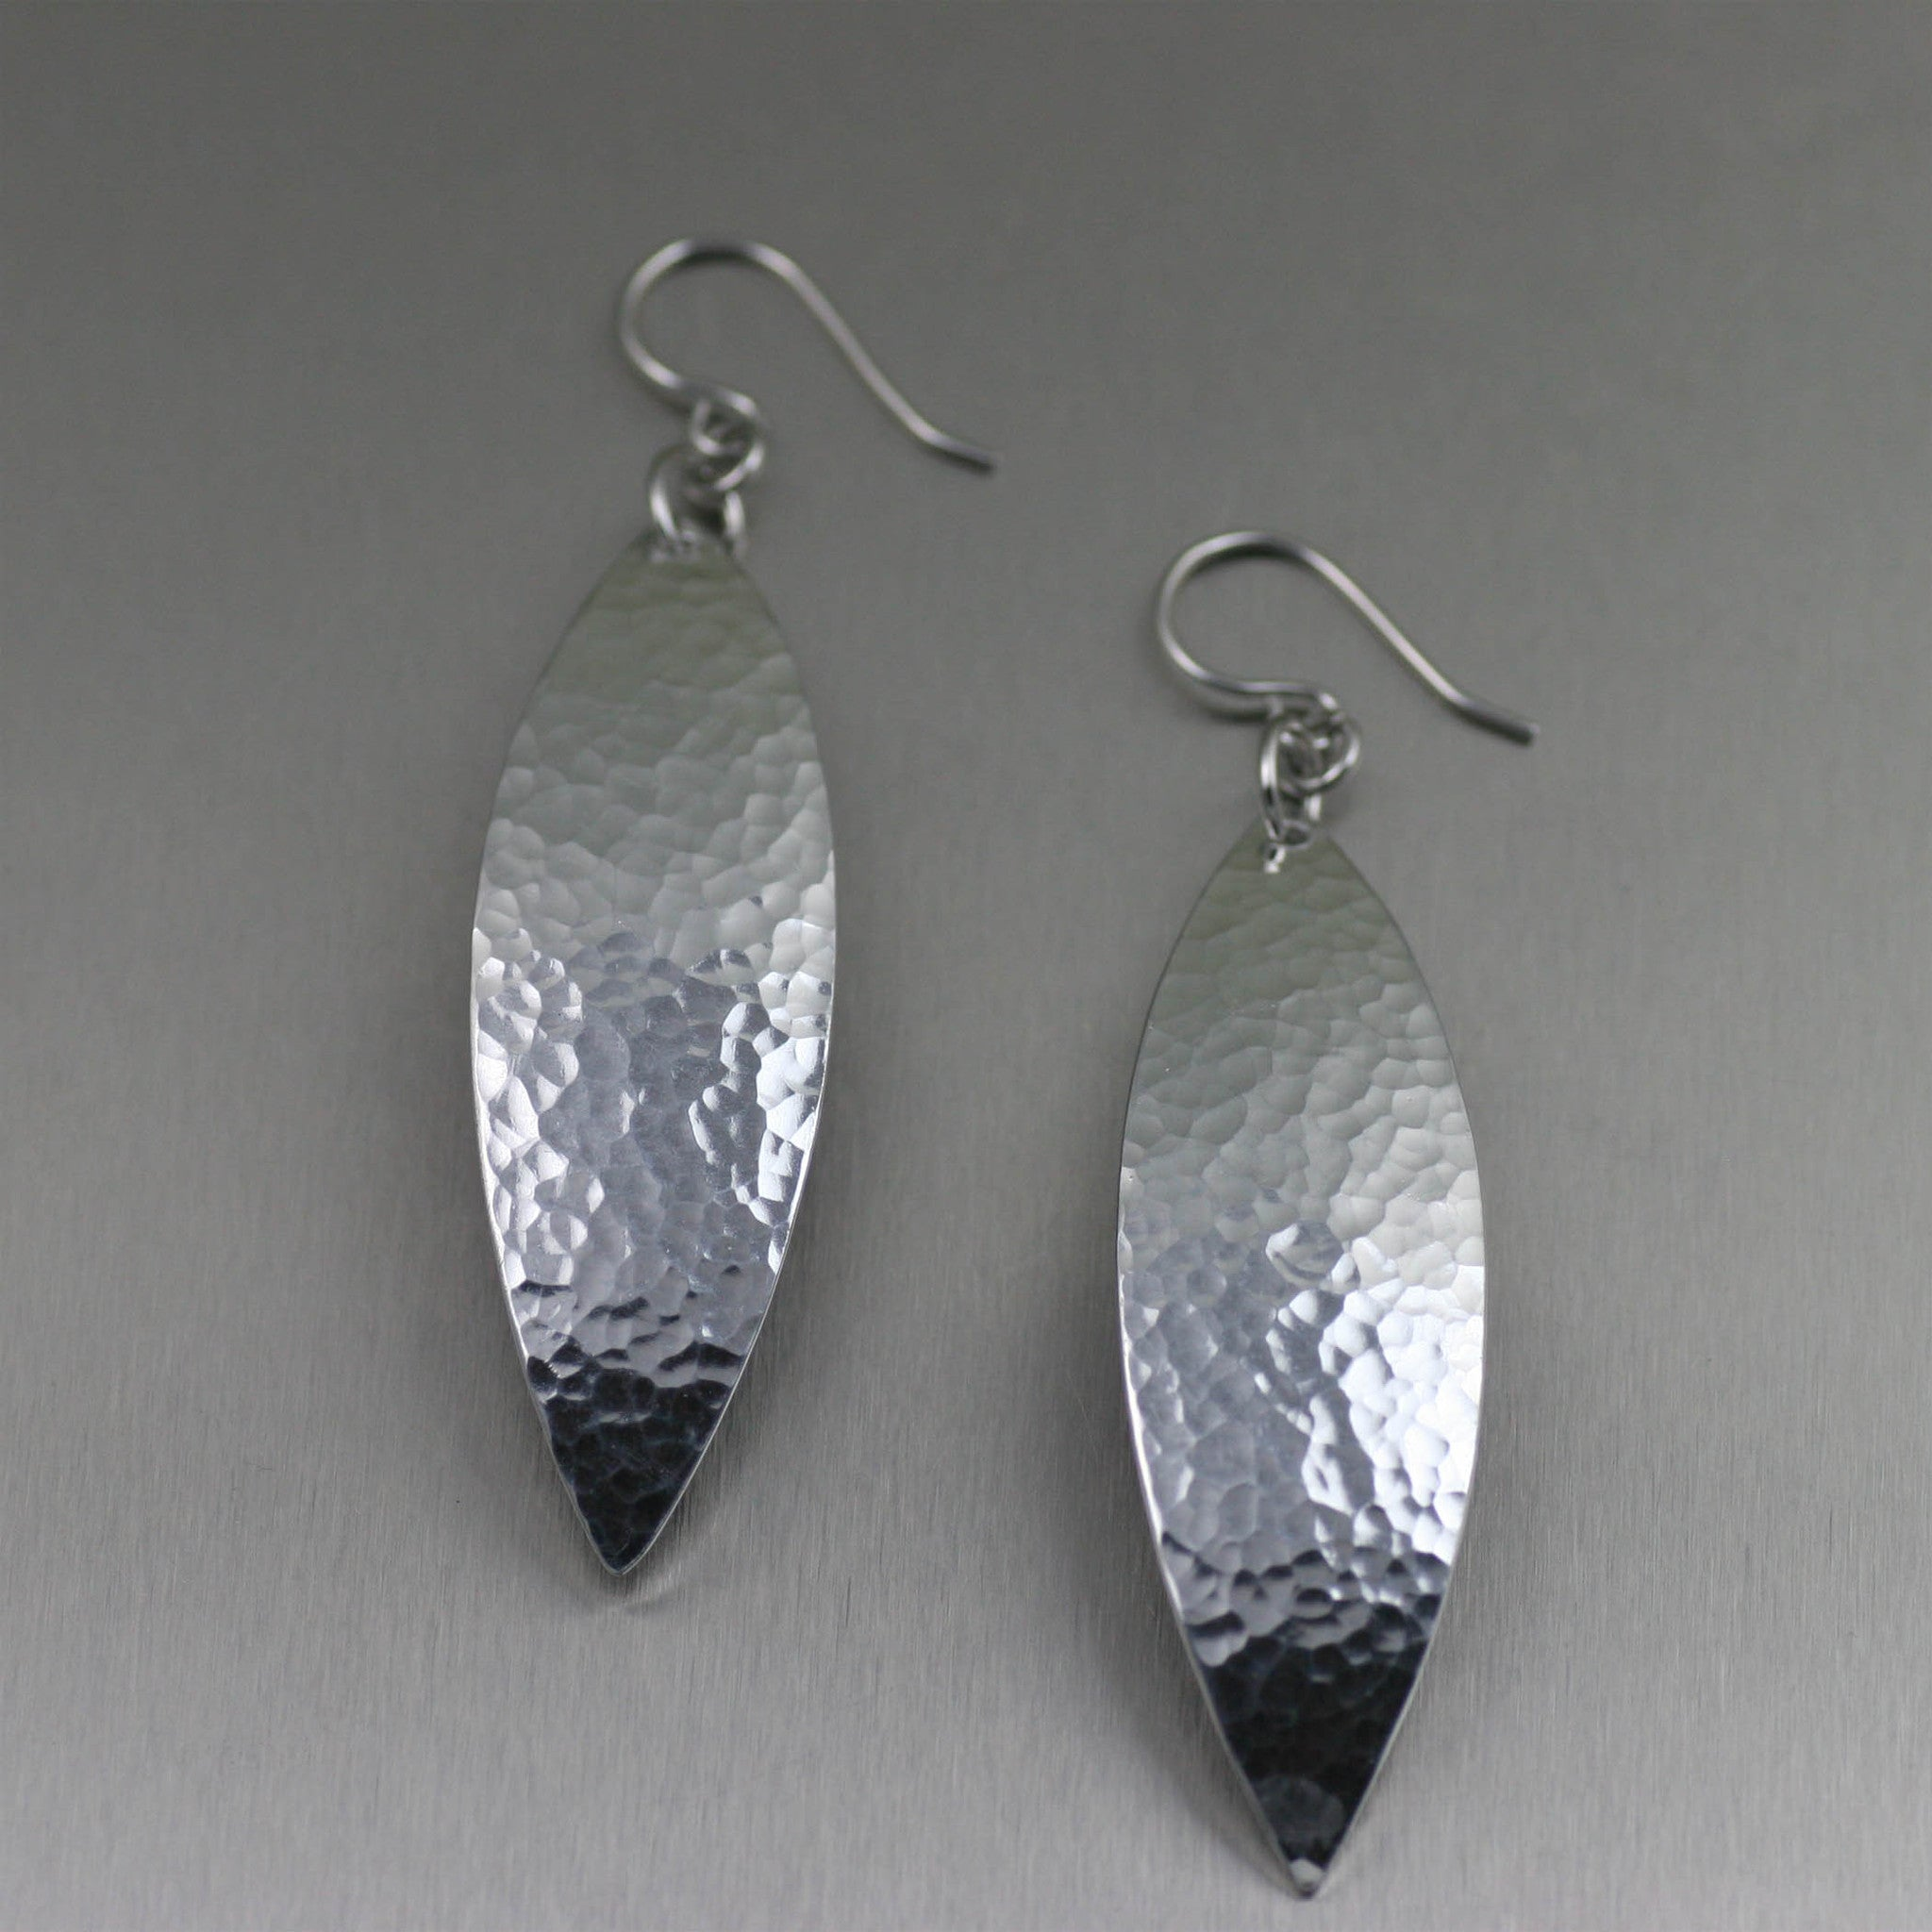 Hammered Aluminum Leaf Earrings